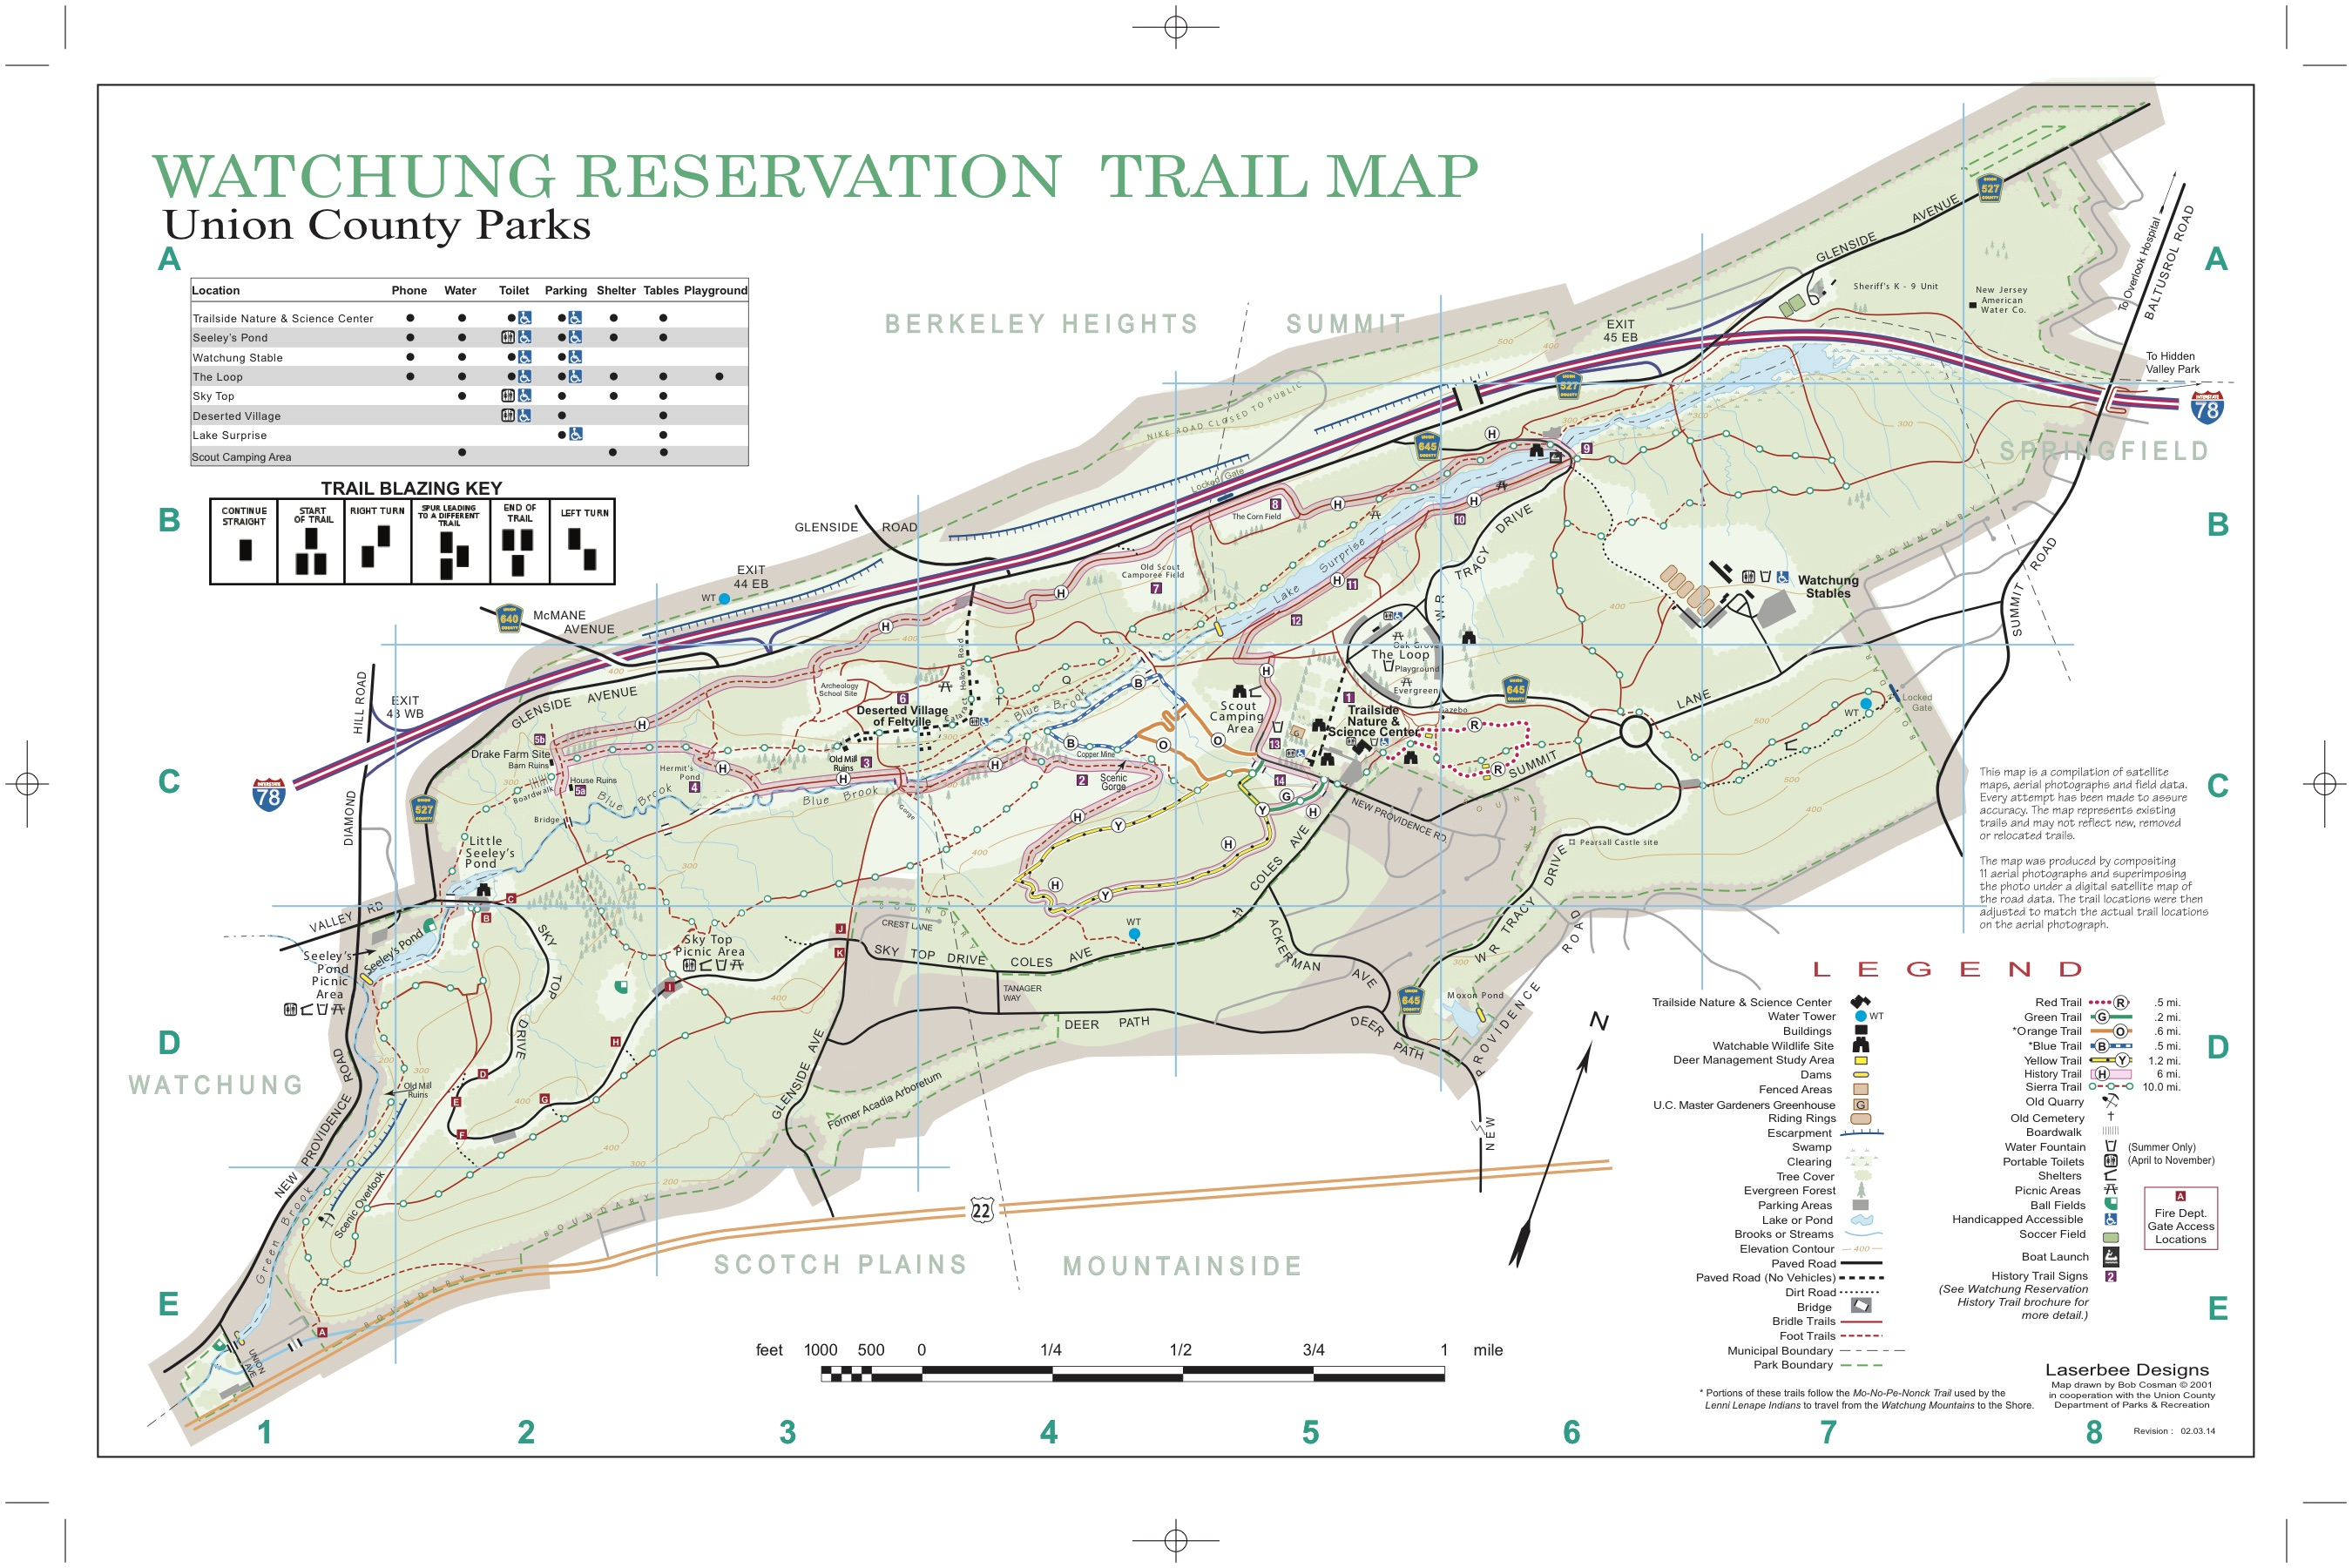 Google Maps NJ Hiking Trails – That Suburban Life